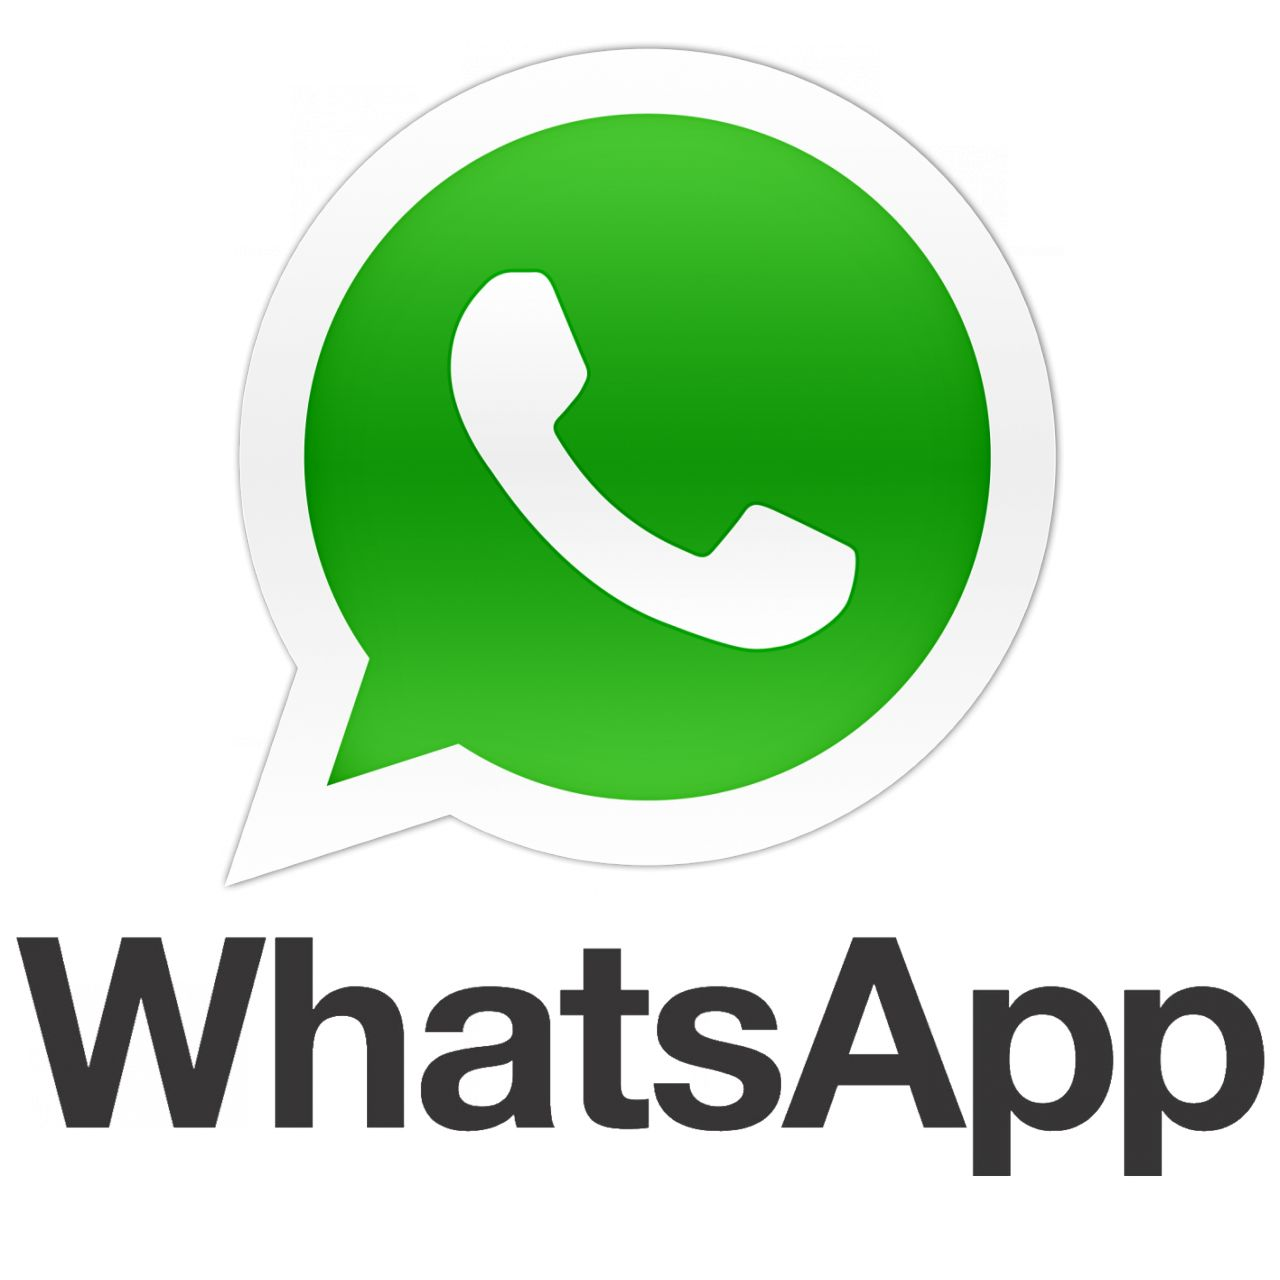 whatsup!!! dan begin nu met WhatsApp, direct met ons.